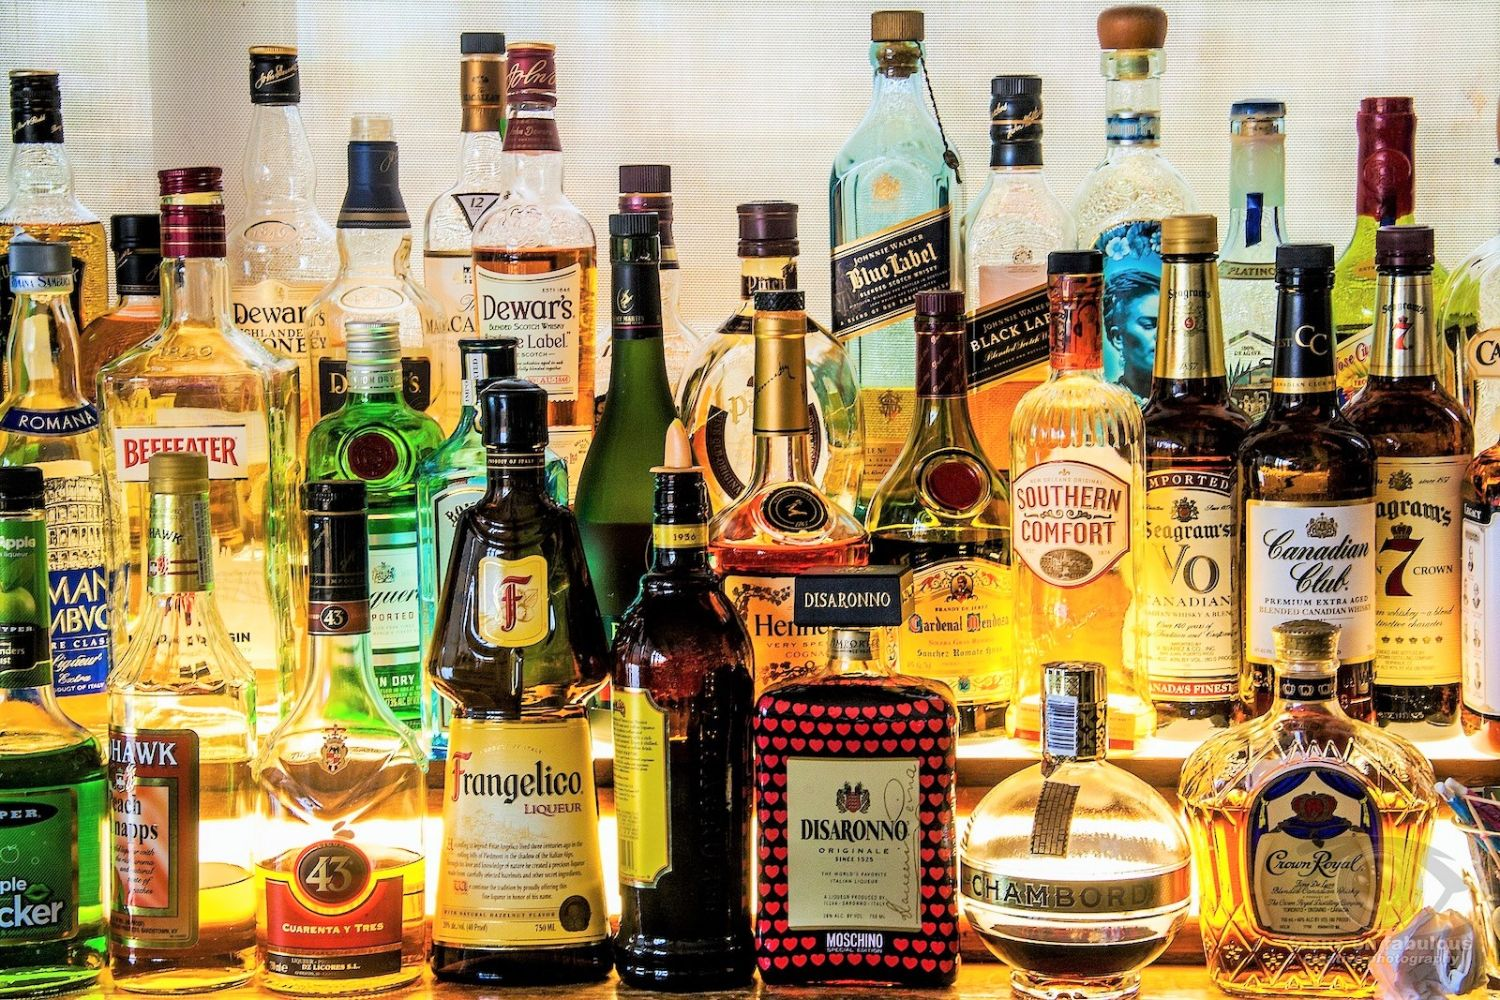 Christmas Booze Bonanza, Featuring Branded Champagne, Prosecco, Tequila, Patron, Whisky, Rum, Gin, Sambuca ***OVER 18's ONLY***